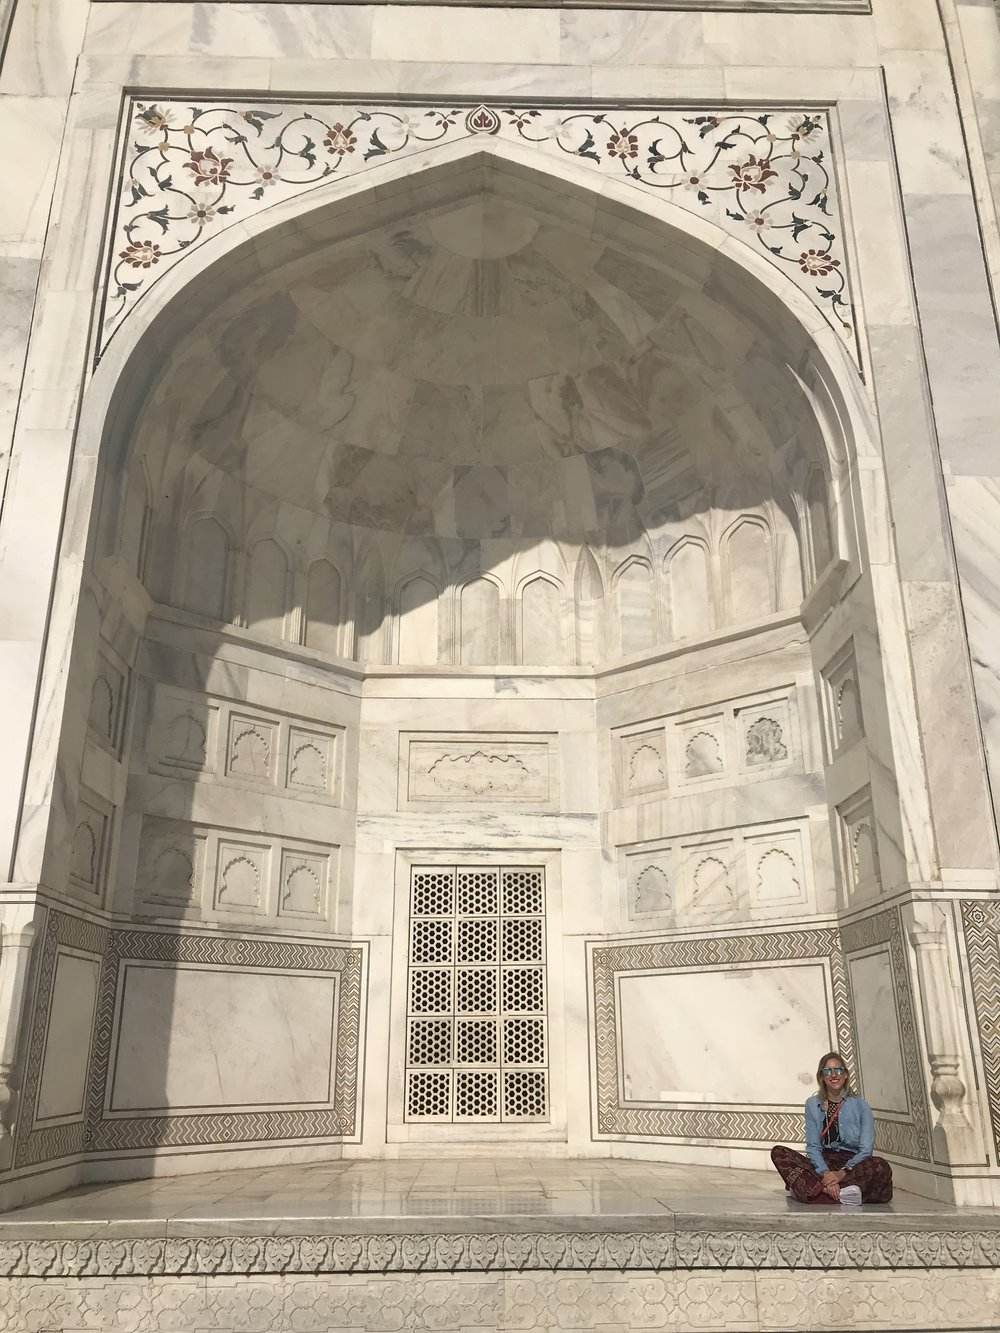 Slowing down and taking it all in at the Taj Mahal